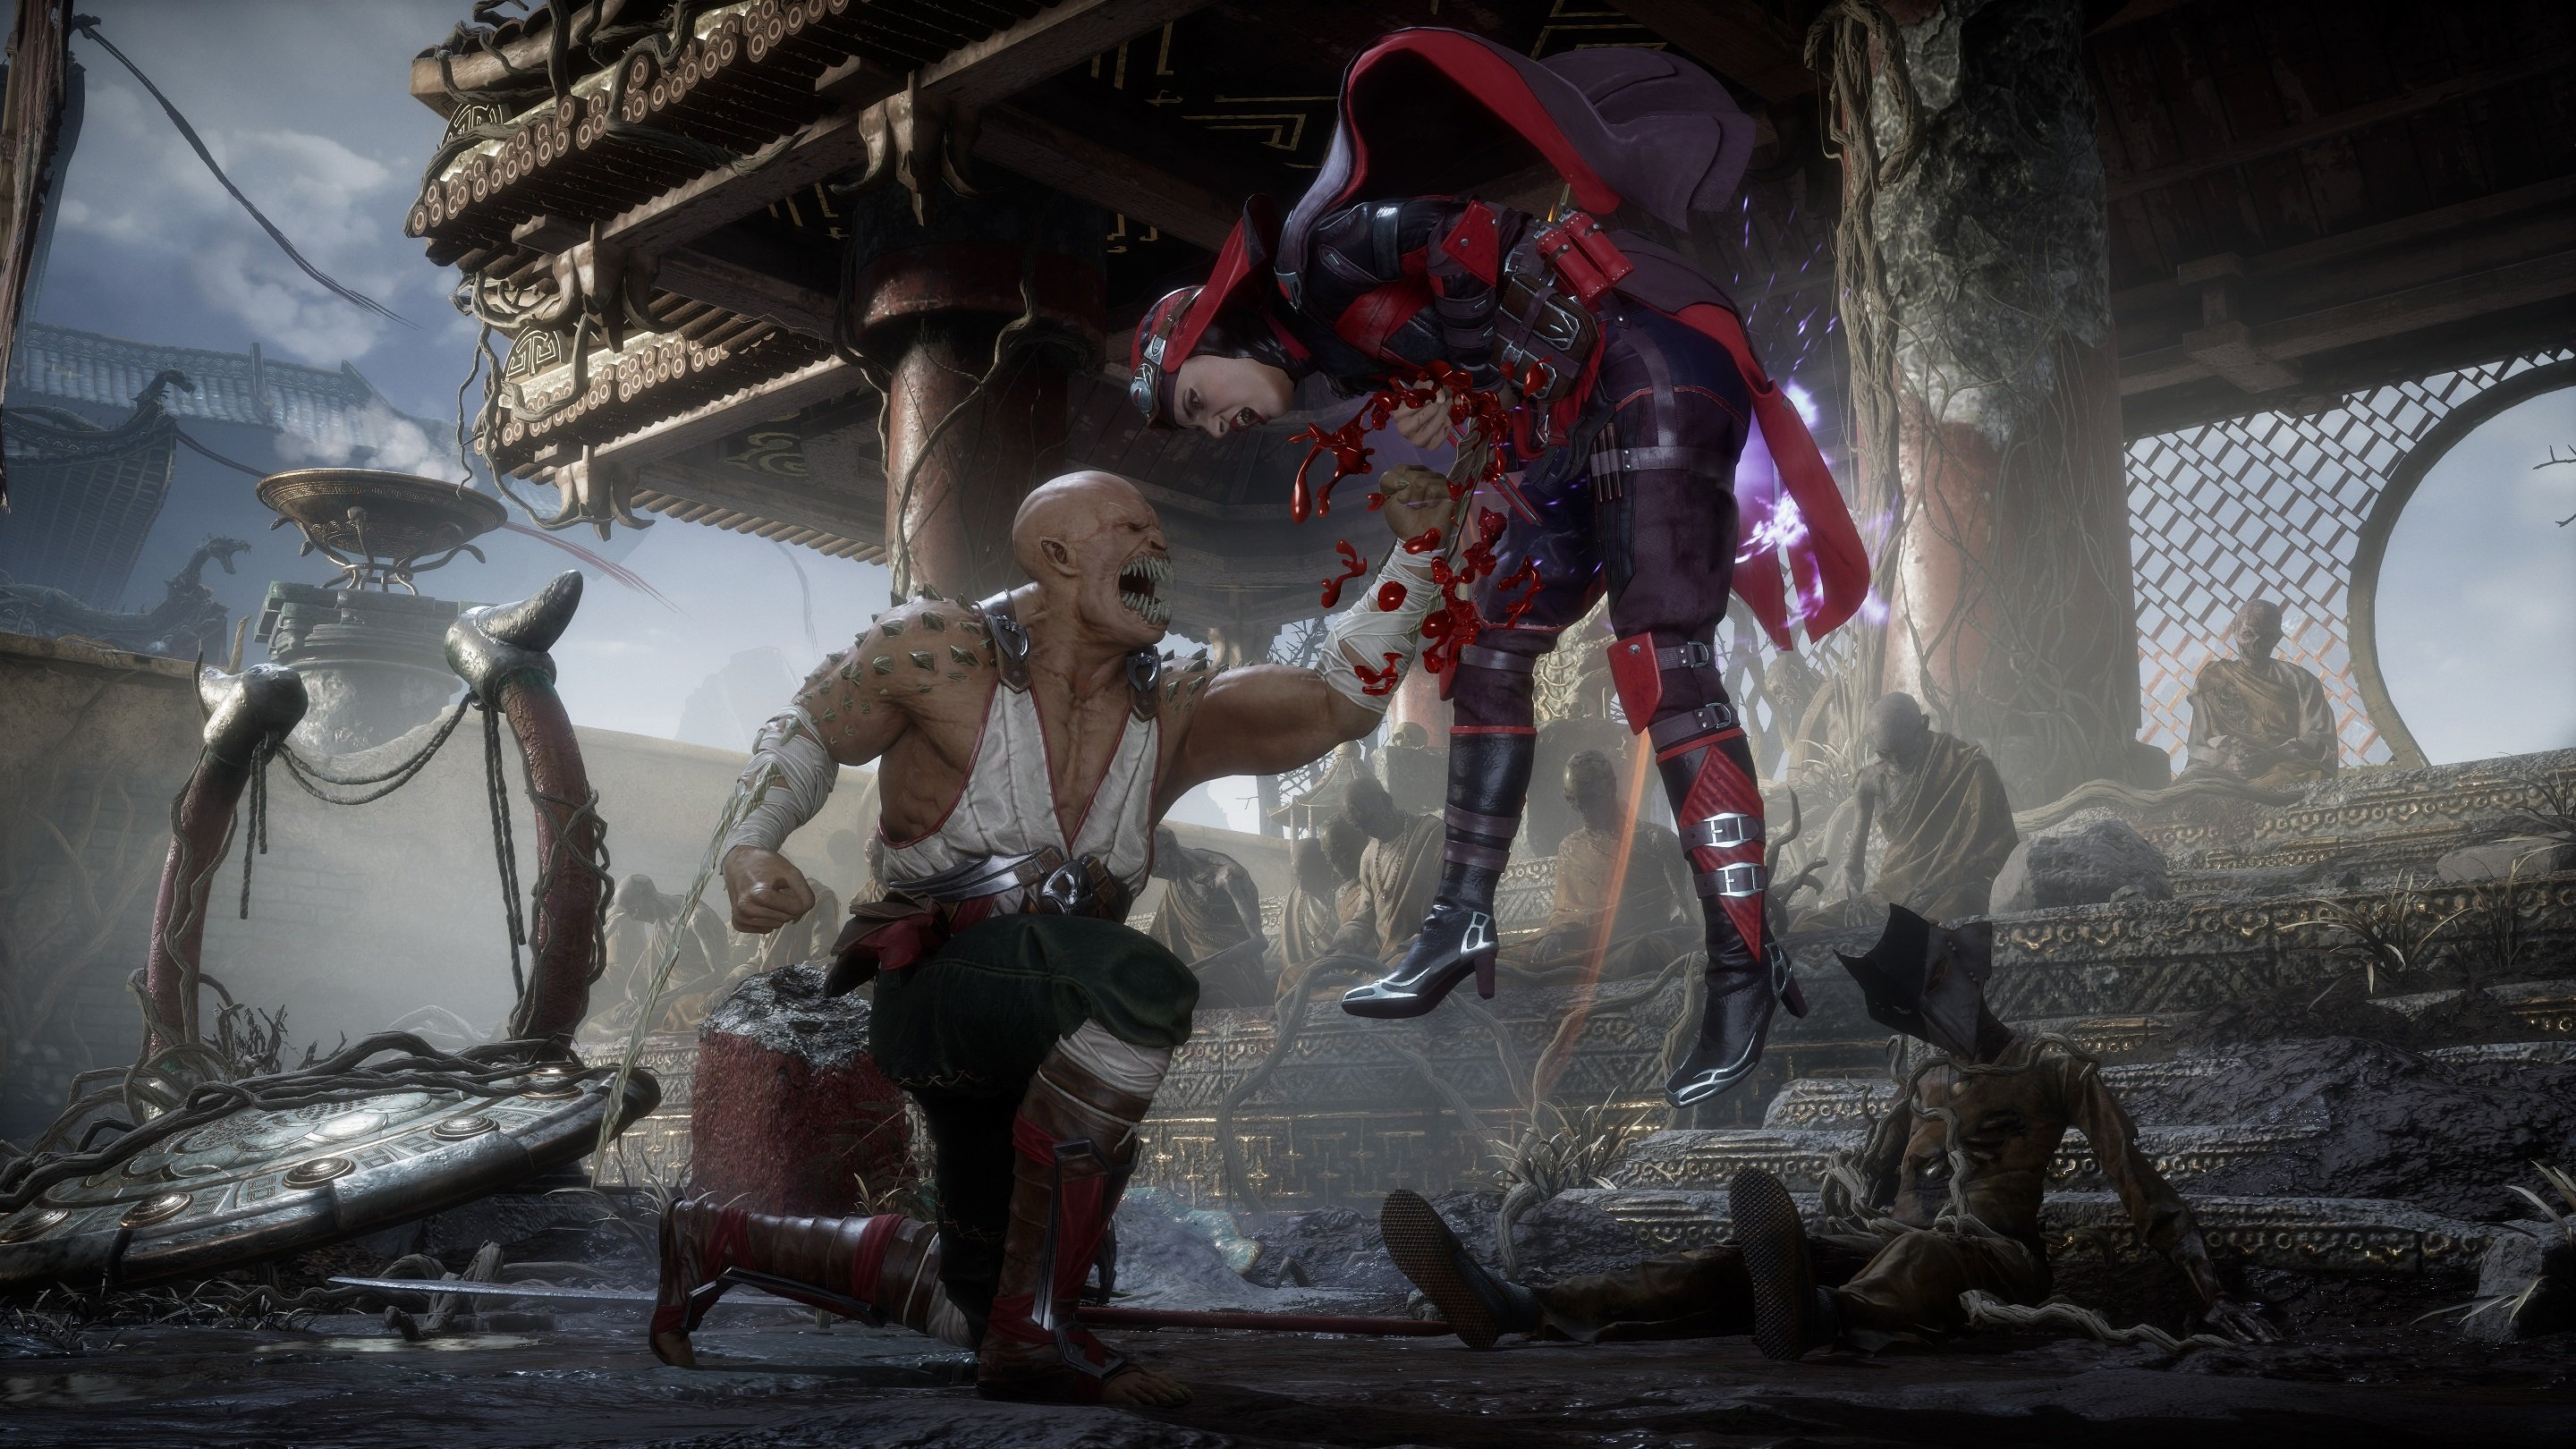 Does Mortal Kombat 11 have crossplay